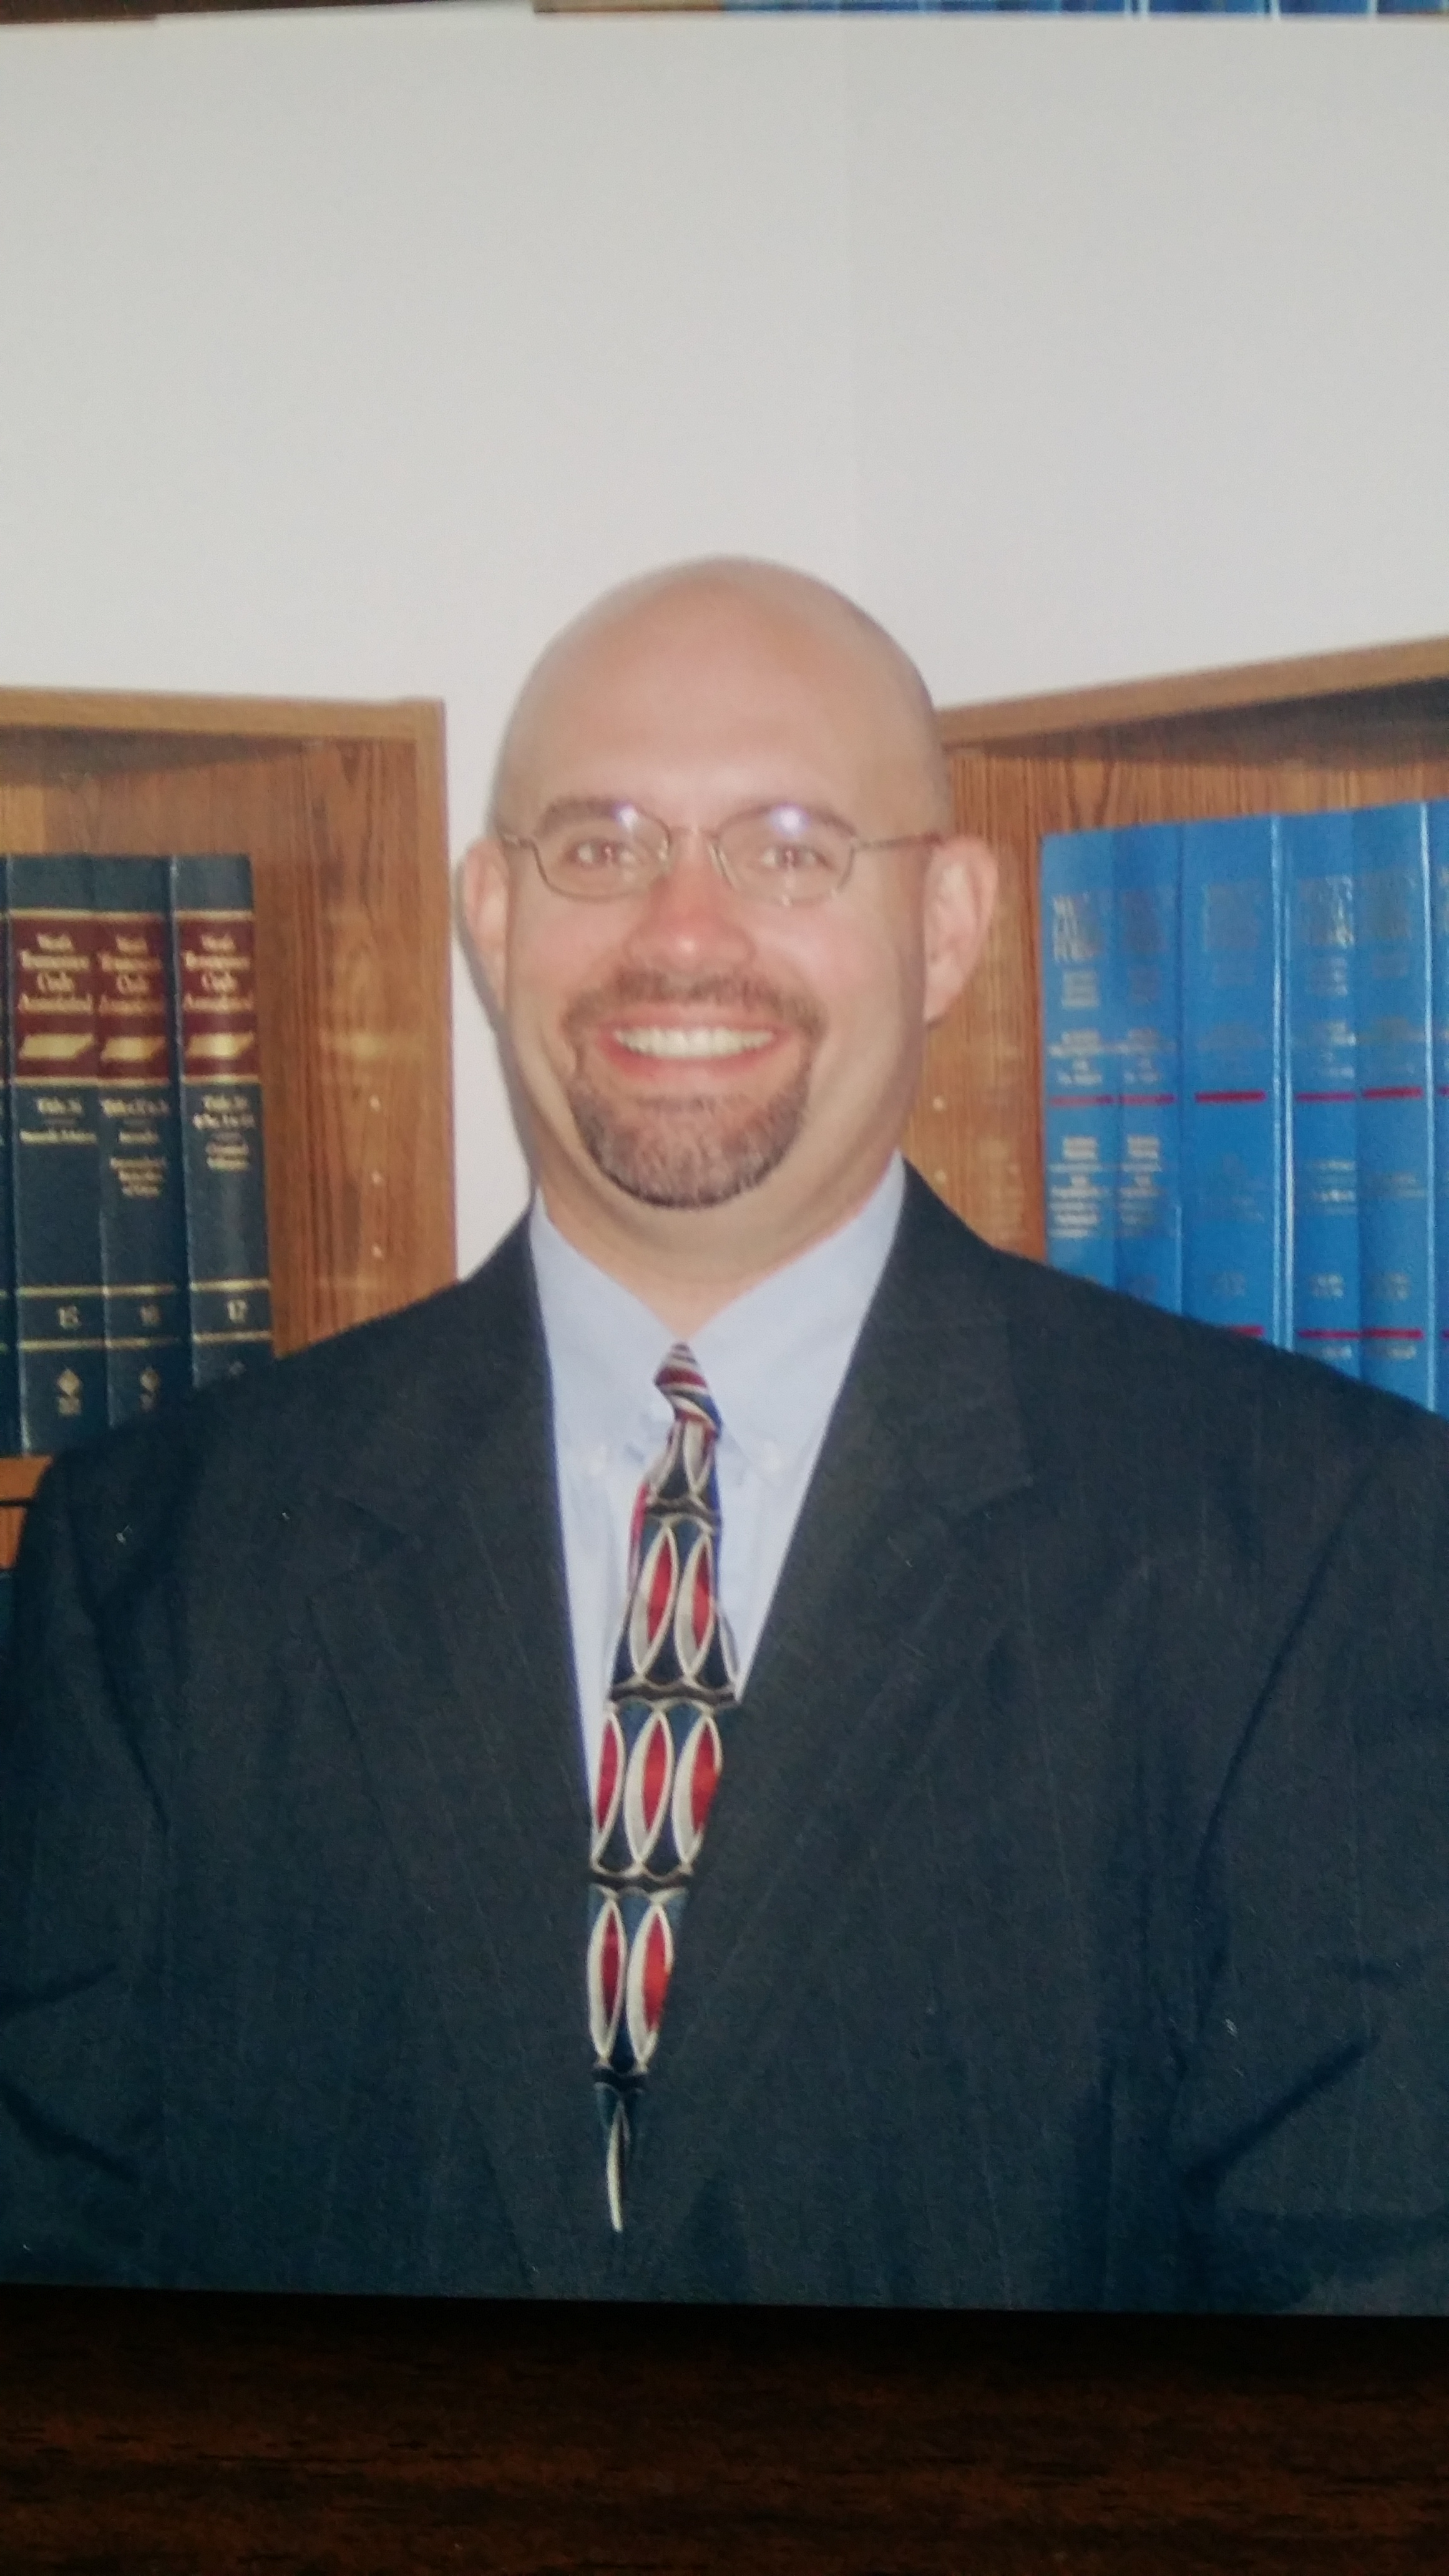 J Reese Holley Attorney at Law image 1